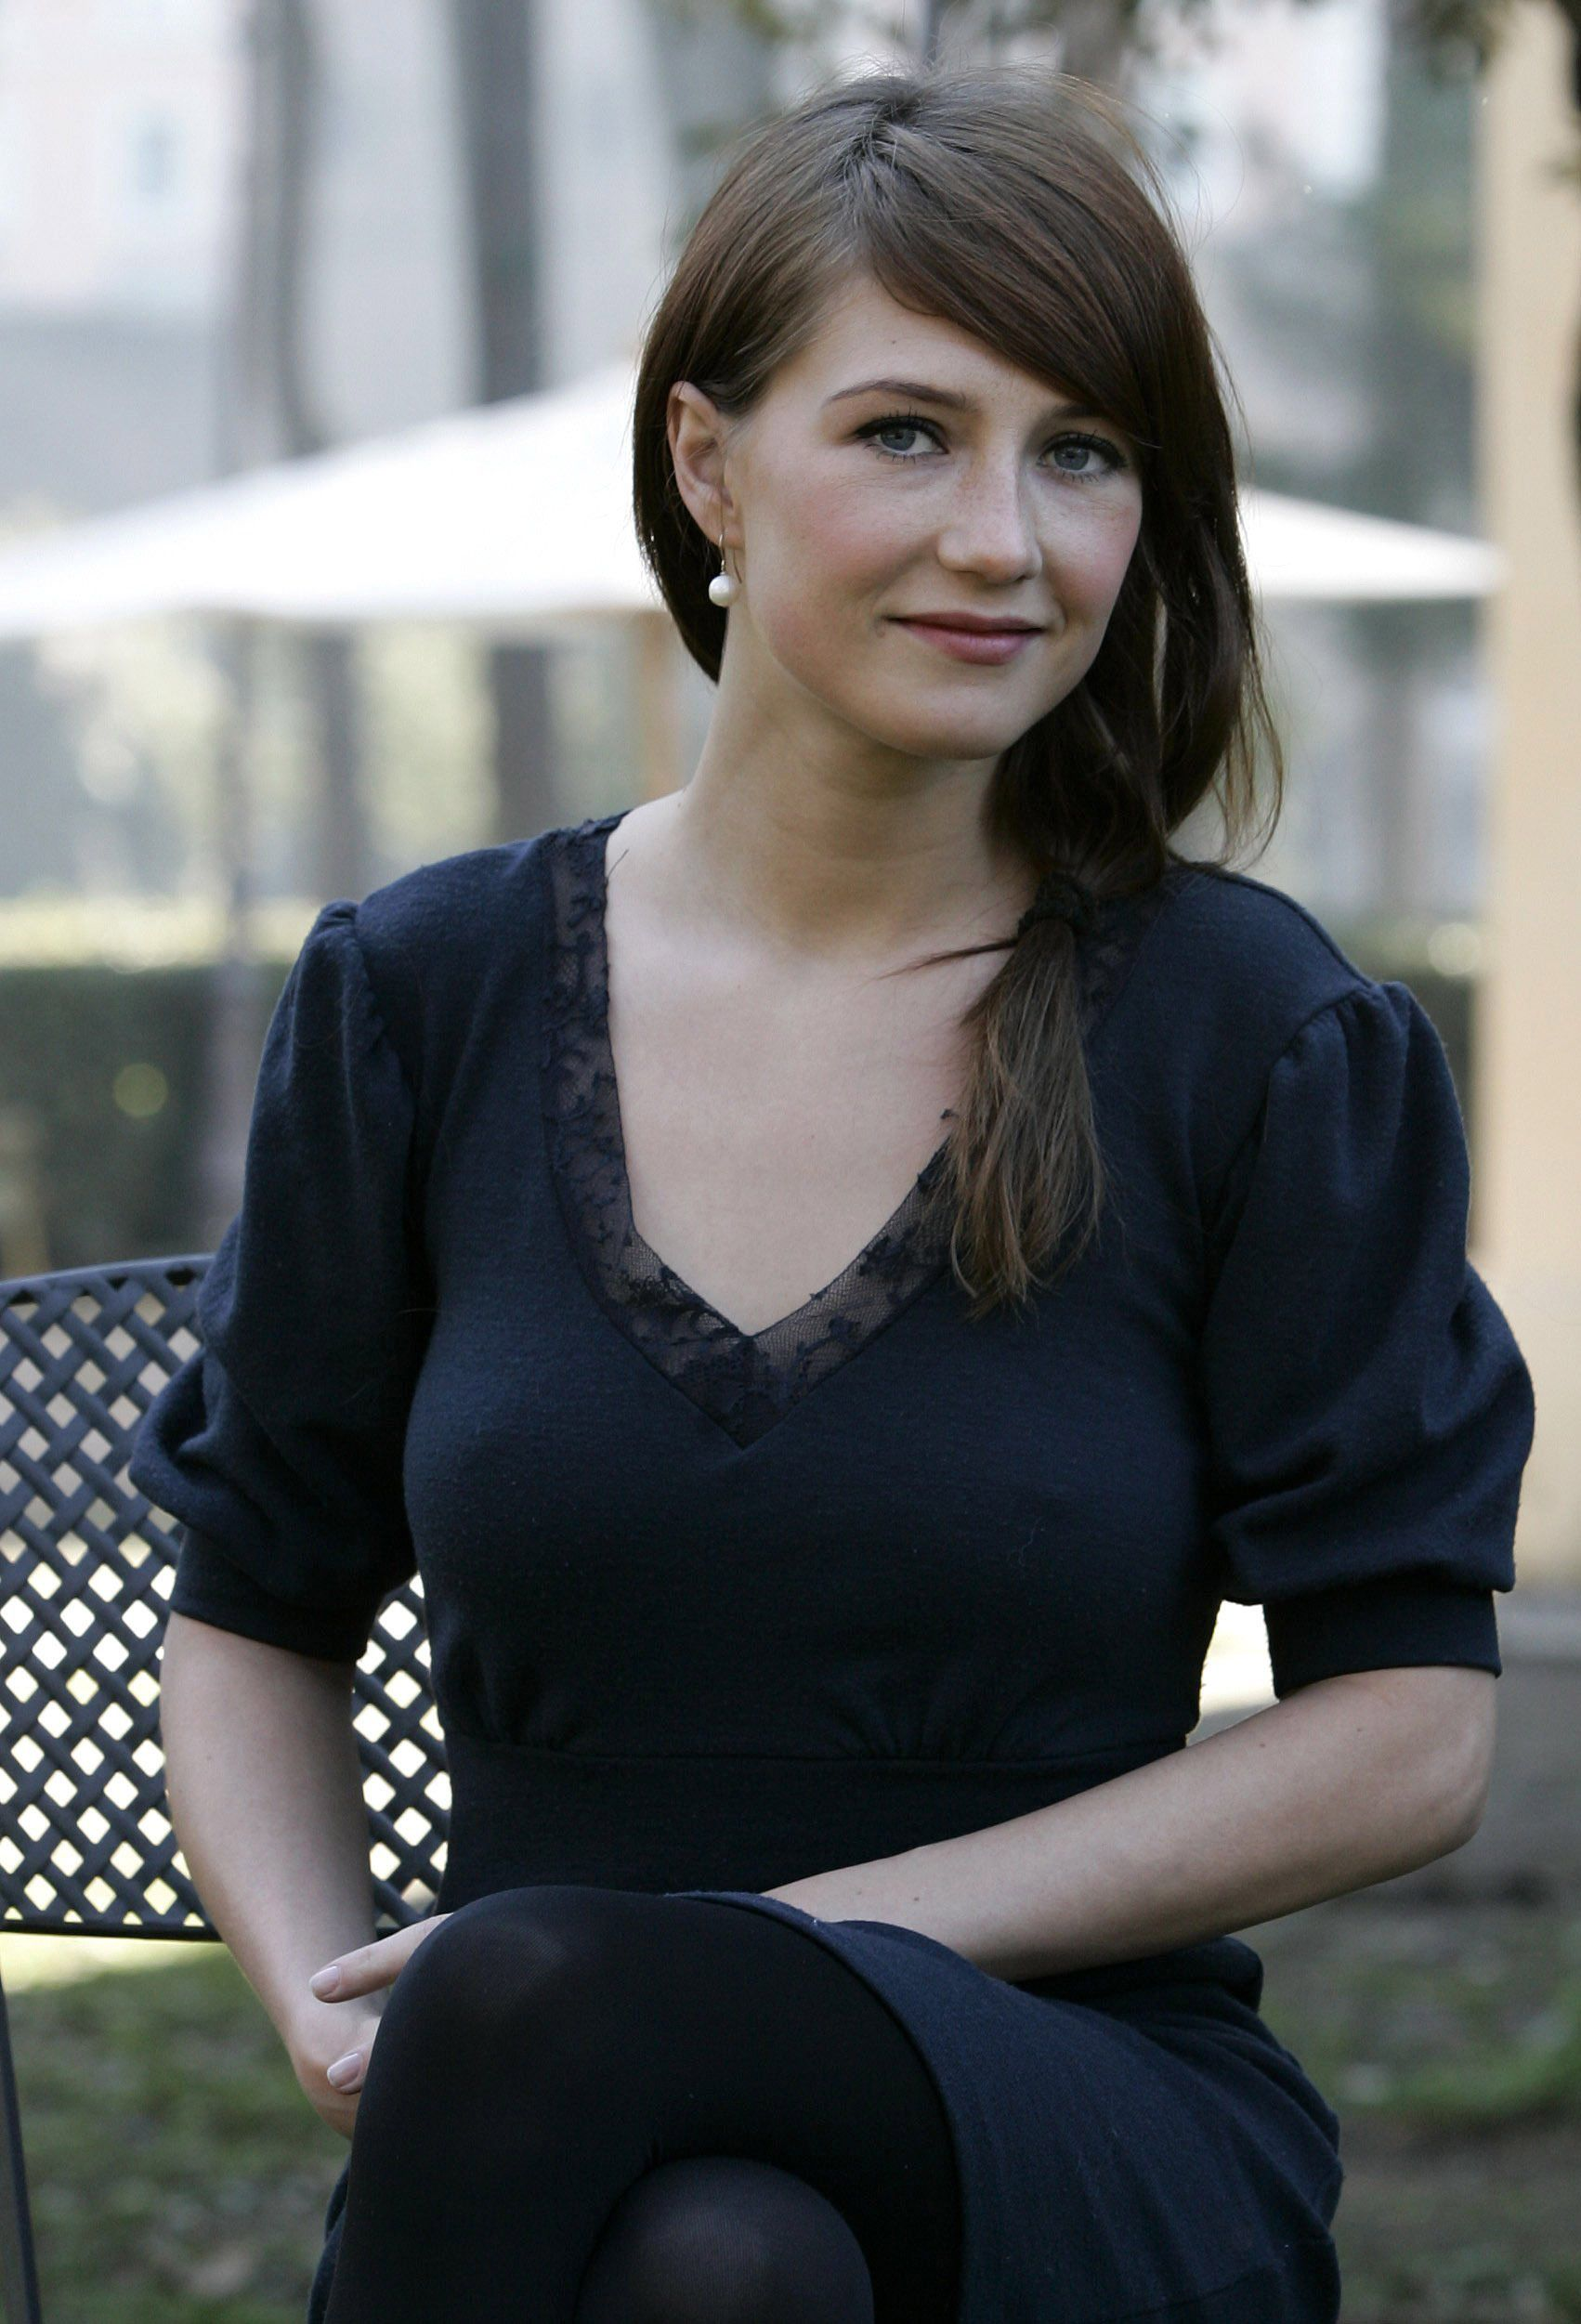 Celebrites Carice Van Houten naked (56 foto and video), Ass, Hot, Feet, bra 2006